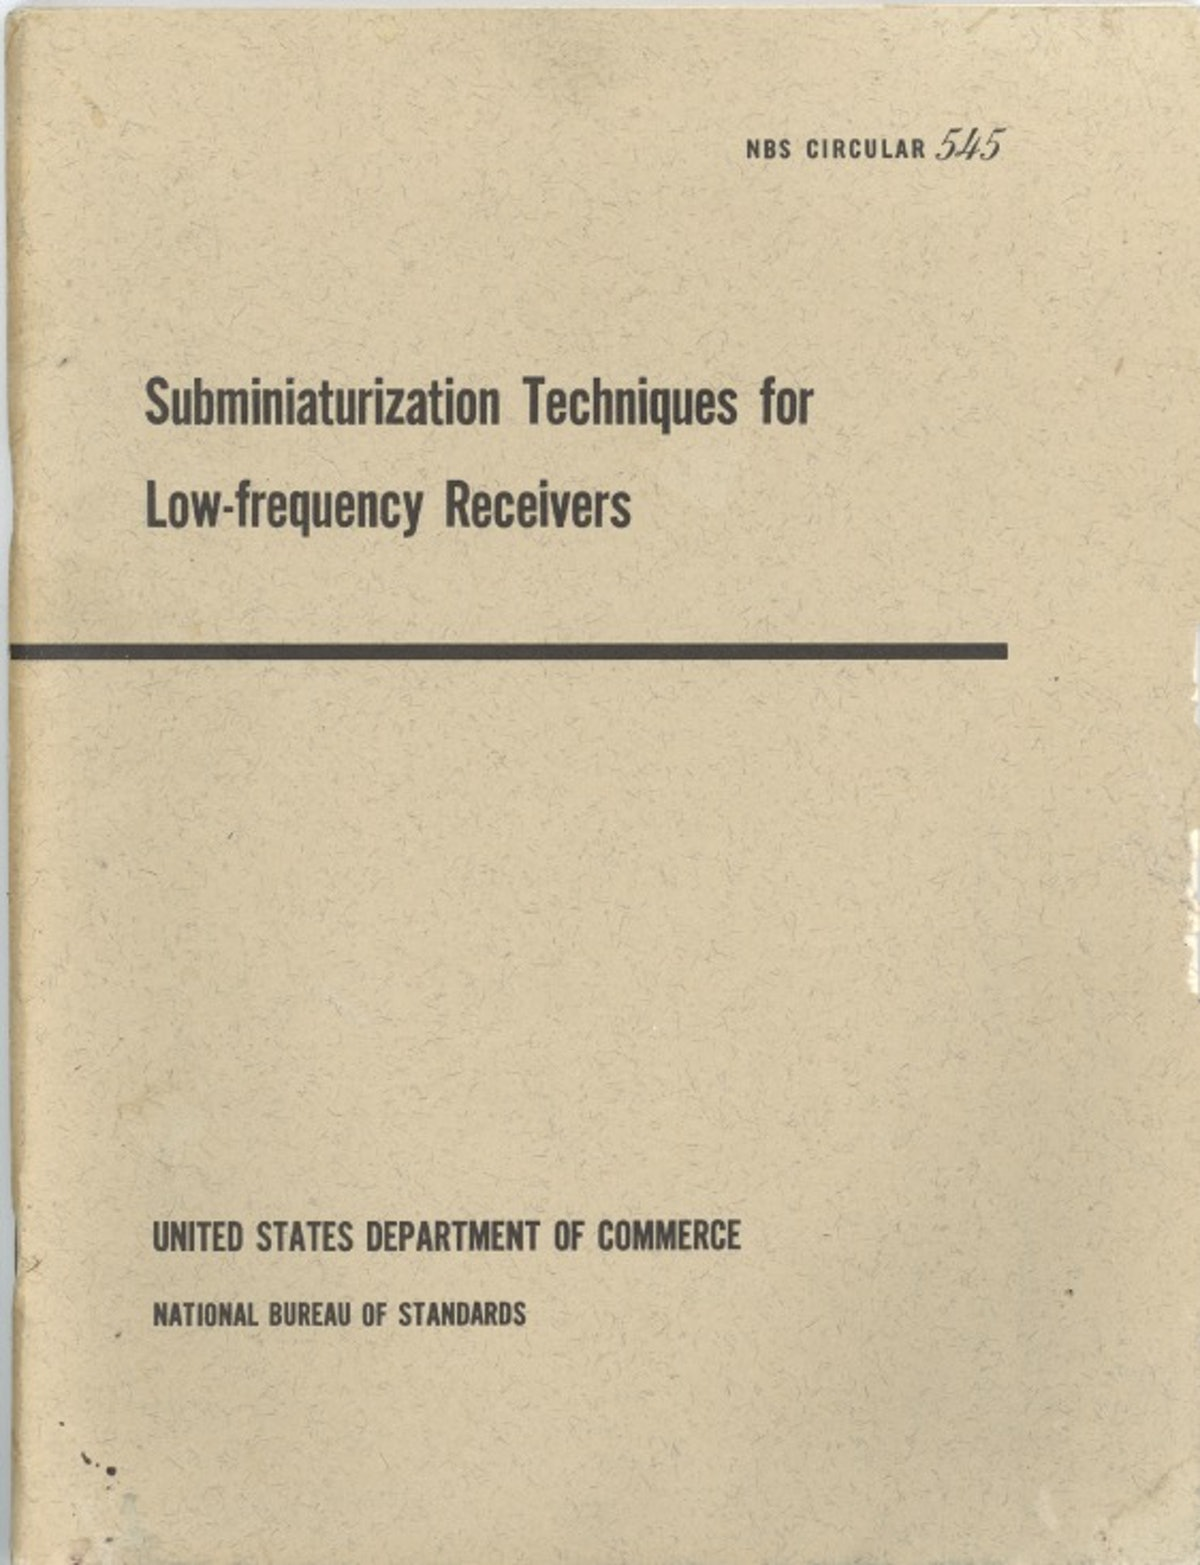 Subminiaturization Techniques for Low-frequency Receivers